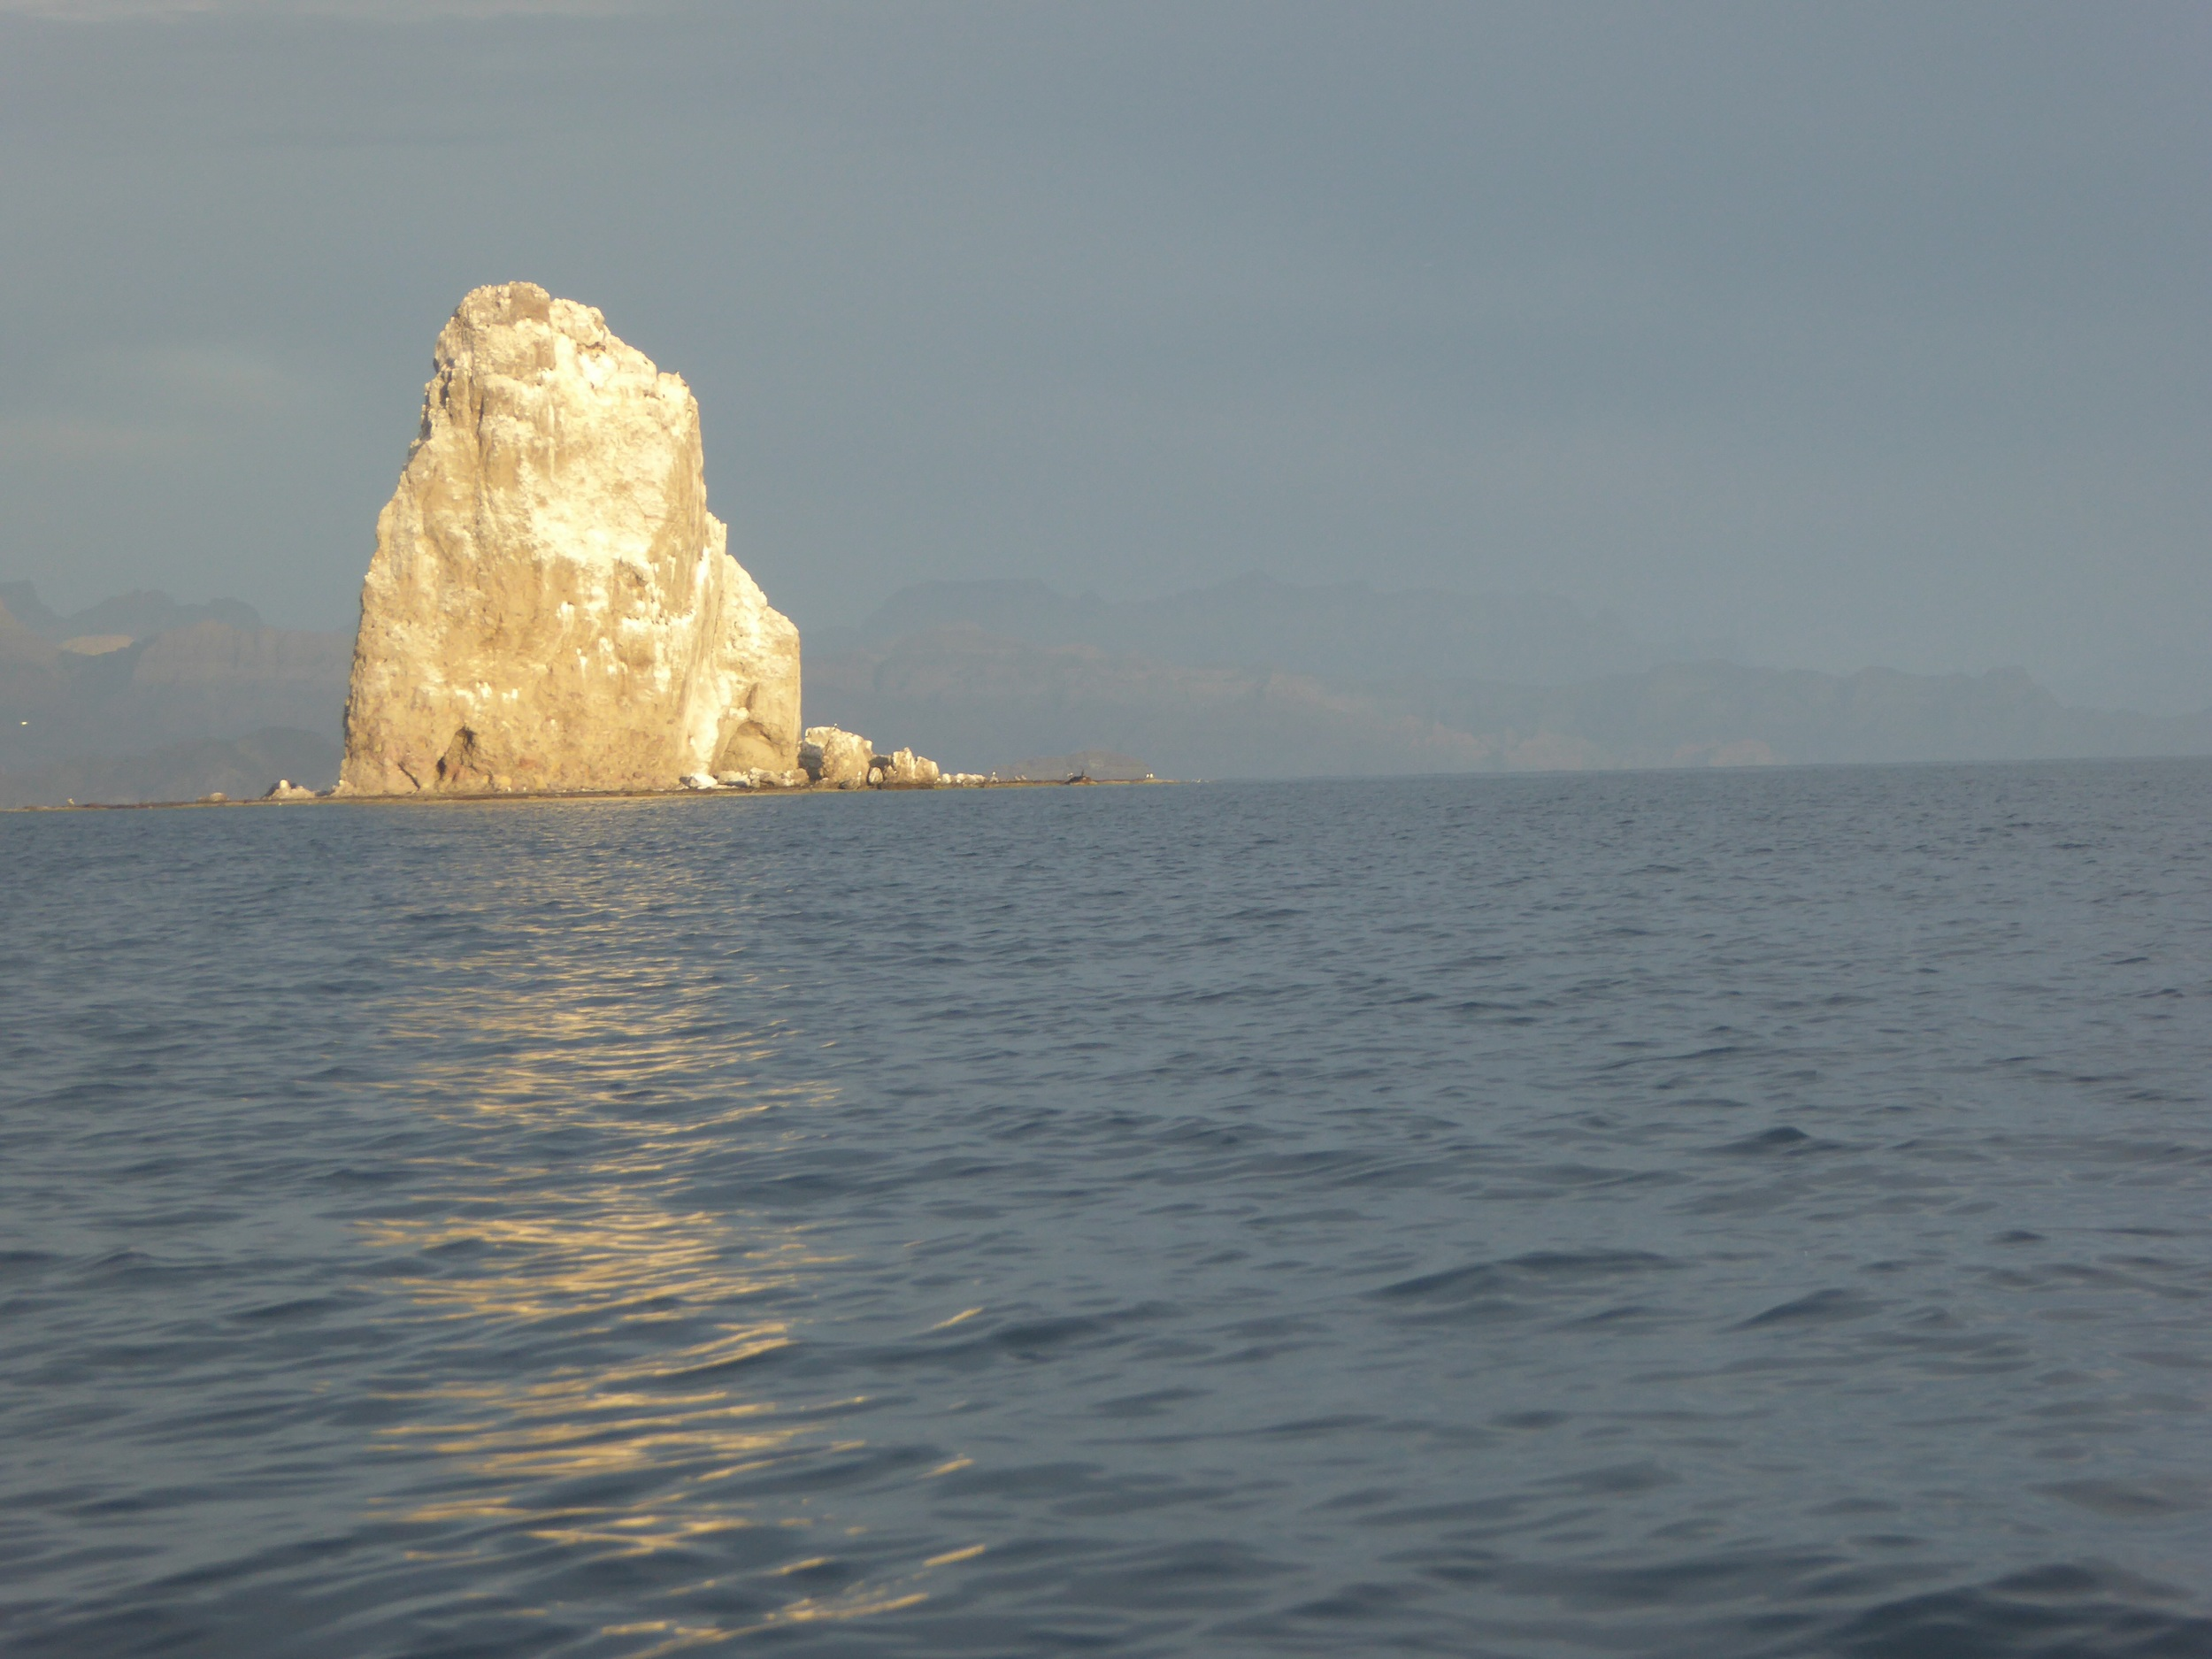 Sun on the rock that indicates entrance to Aqua Verde